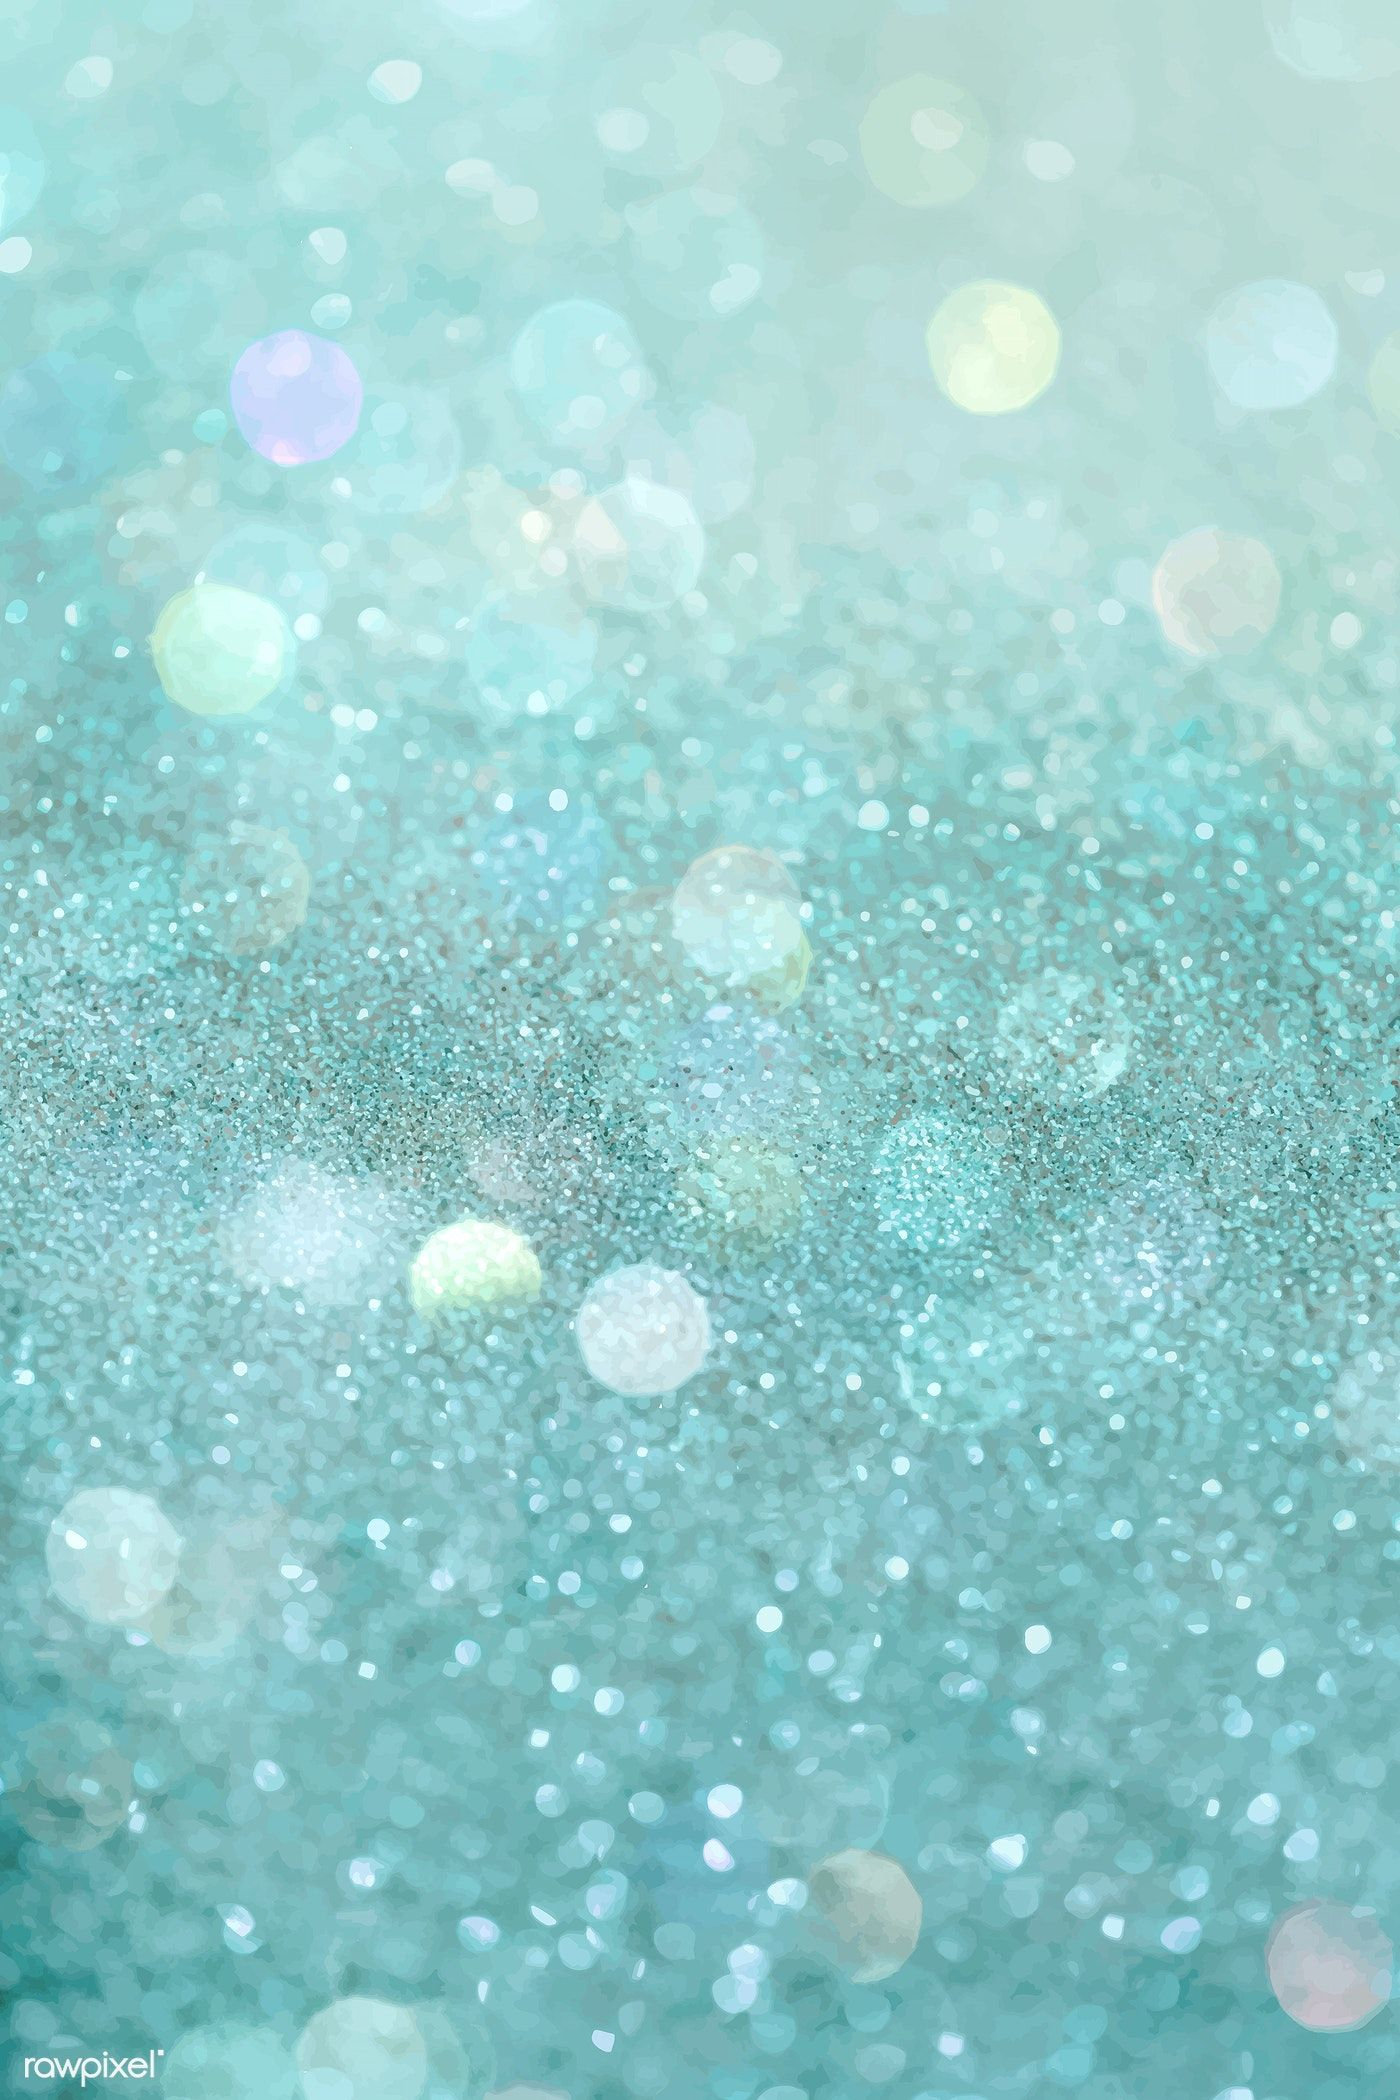 Download premium vector of Shiny green glitter textured background vector by Adjima about abstract green, green frame, abstract, art, and backdrop 2280819